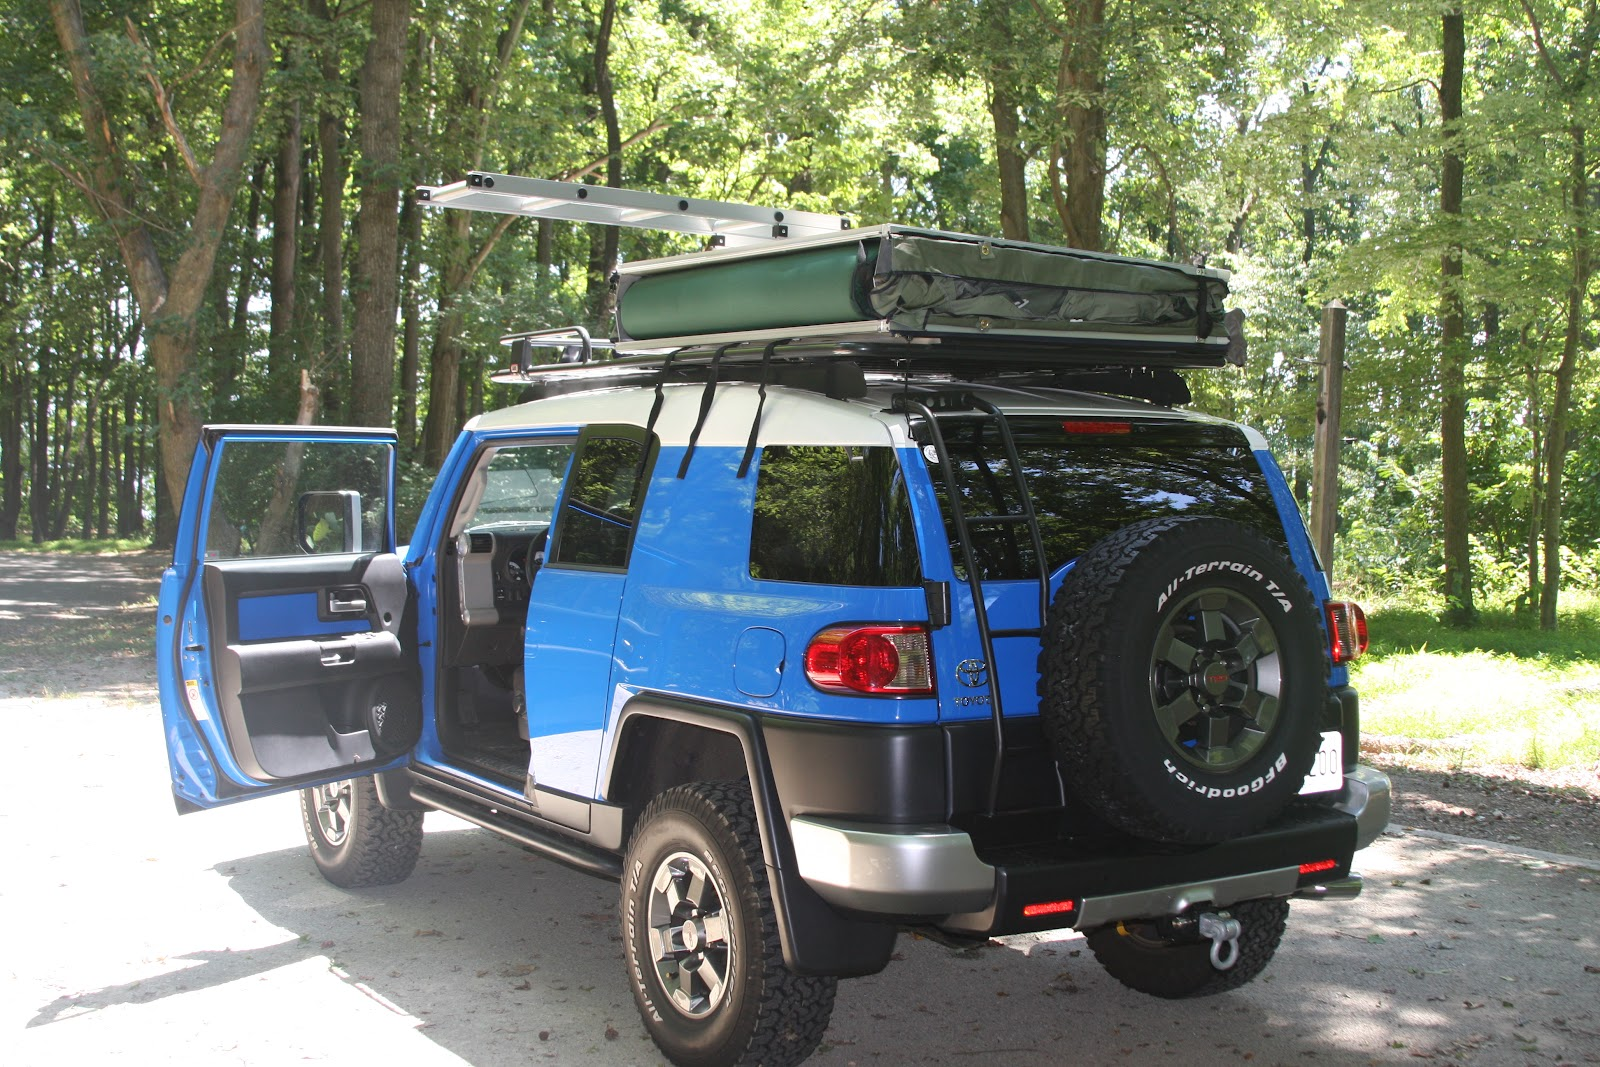 This tent is exactly the same as the ARB Simpson II. Mounting to the ARB touring rack is a little tough because the rack mounts so close to the roof. & My FJ Cruiser: Roof Top Tent